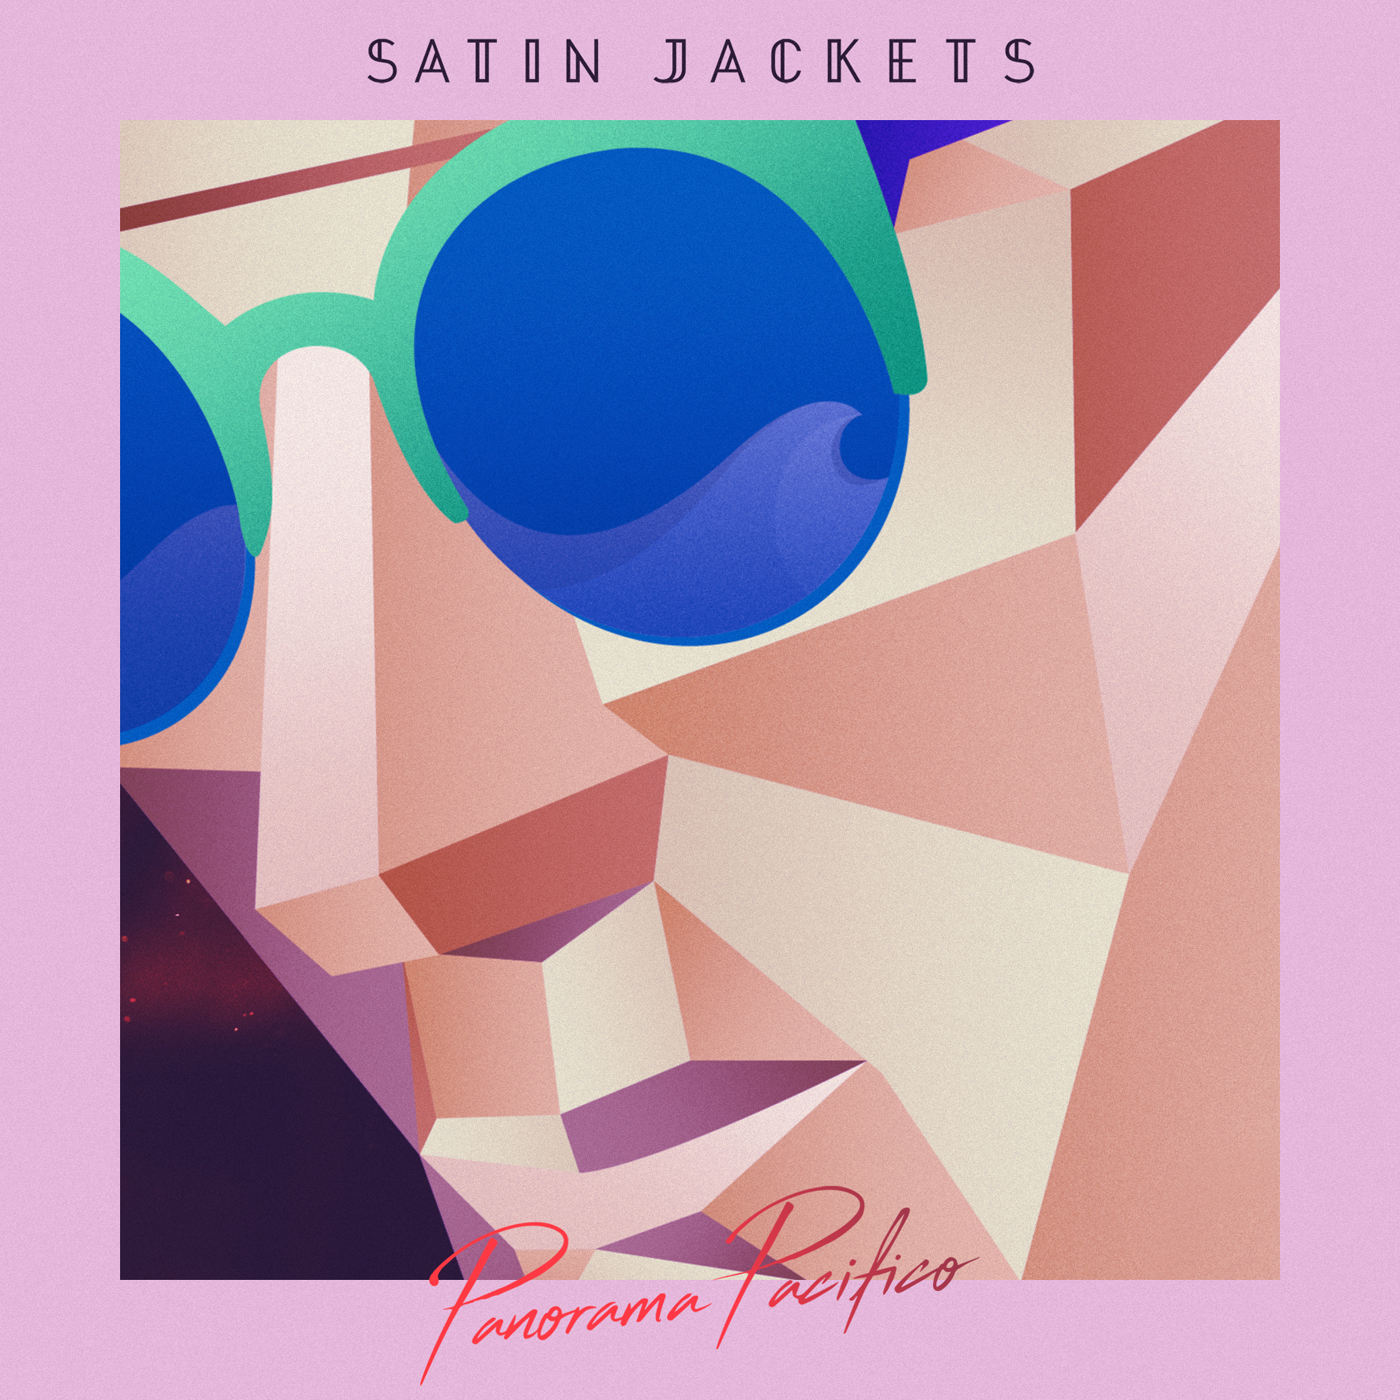 Panorama Pacifico - Satin Jackets